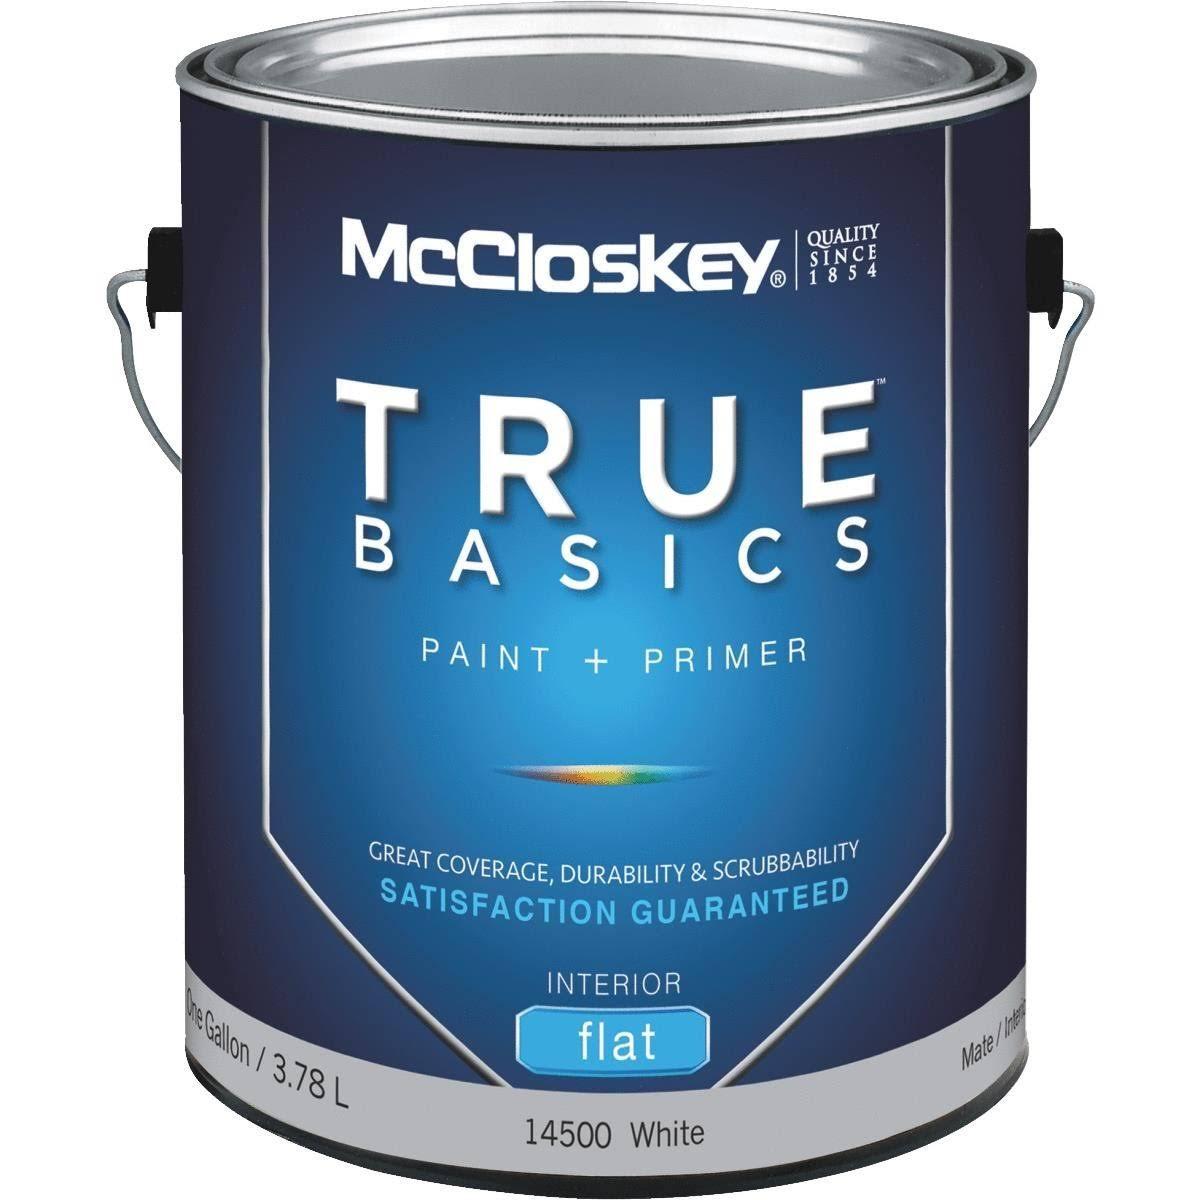 McCloskey True Basics Latex Paint & Primer Flat Interior Wall Paint